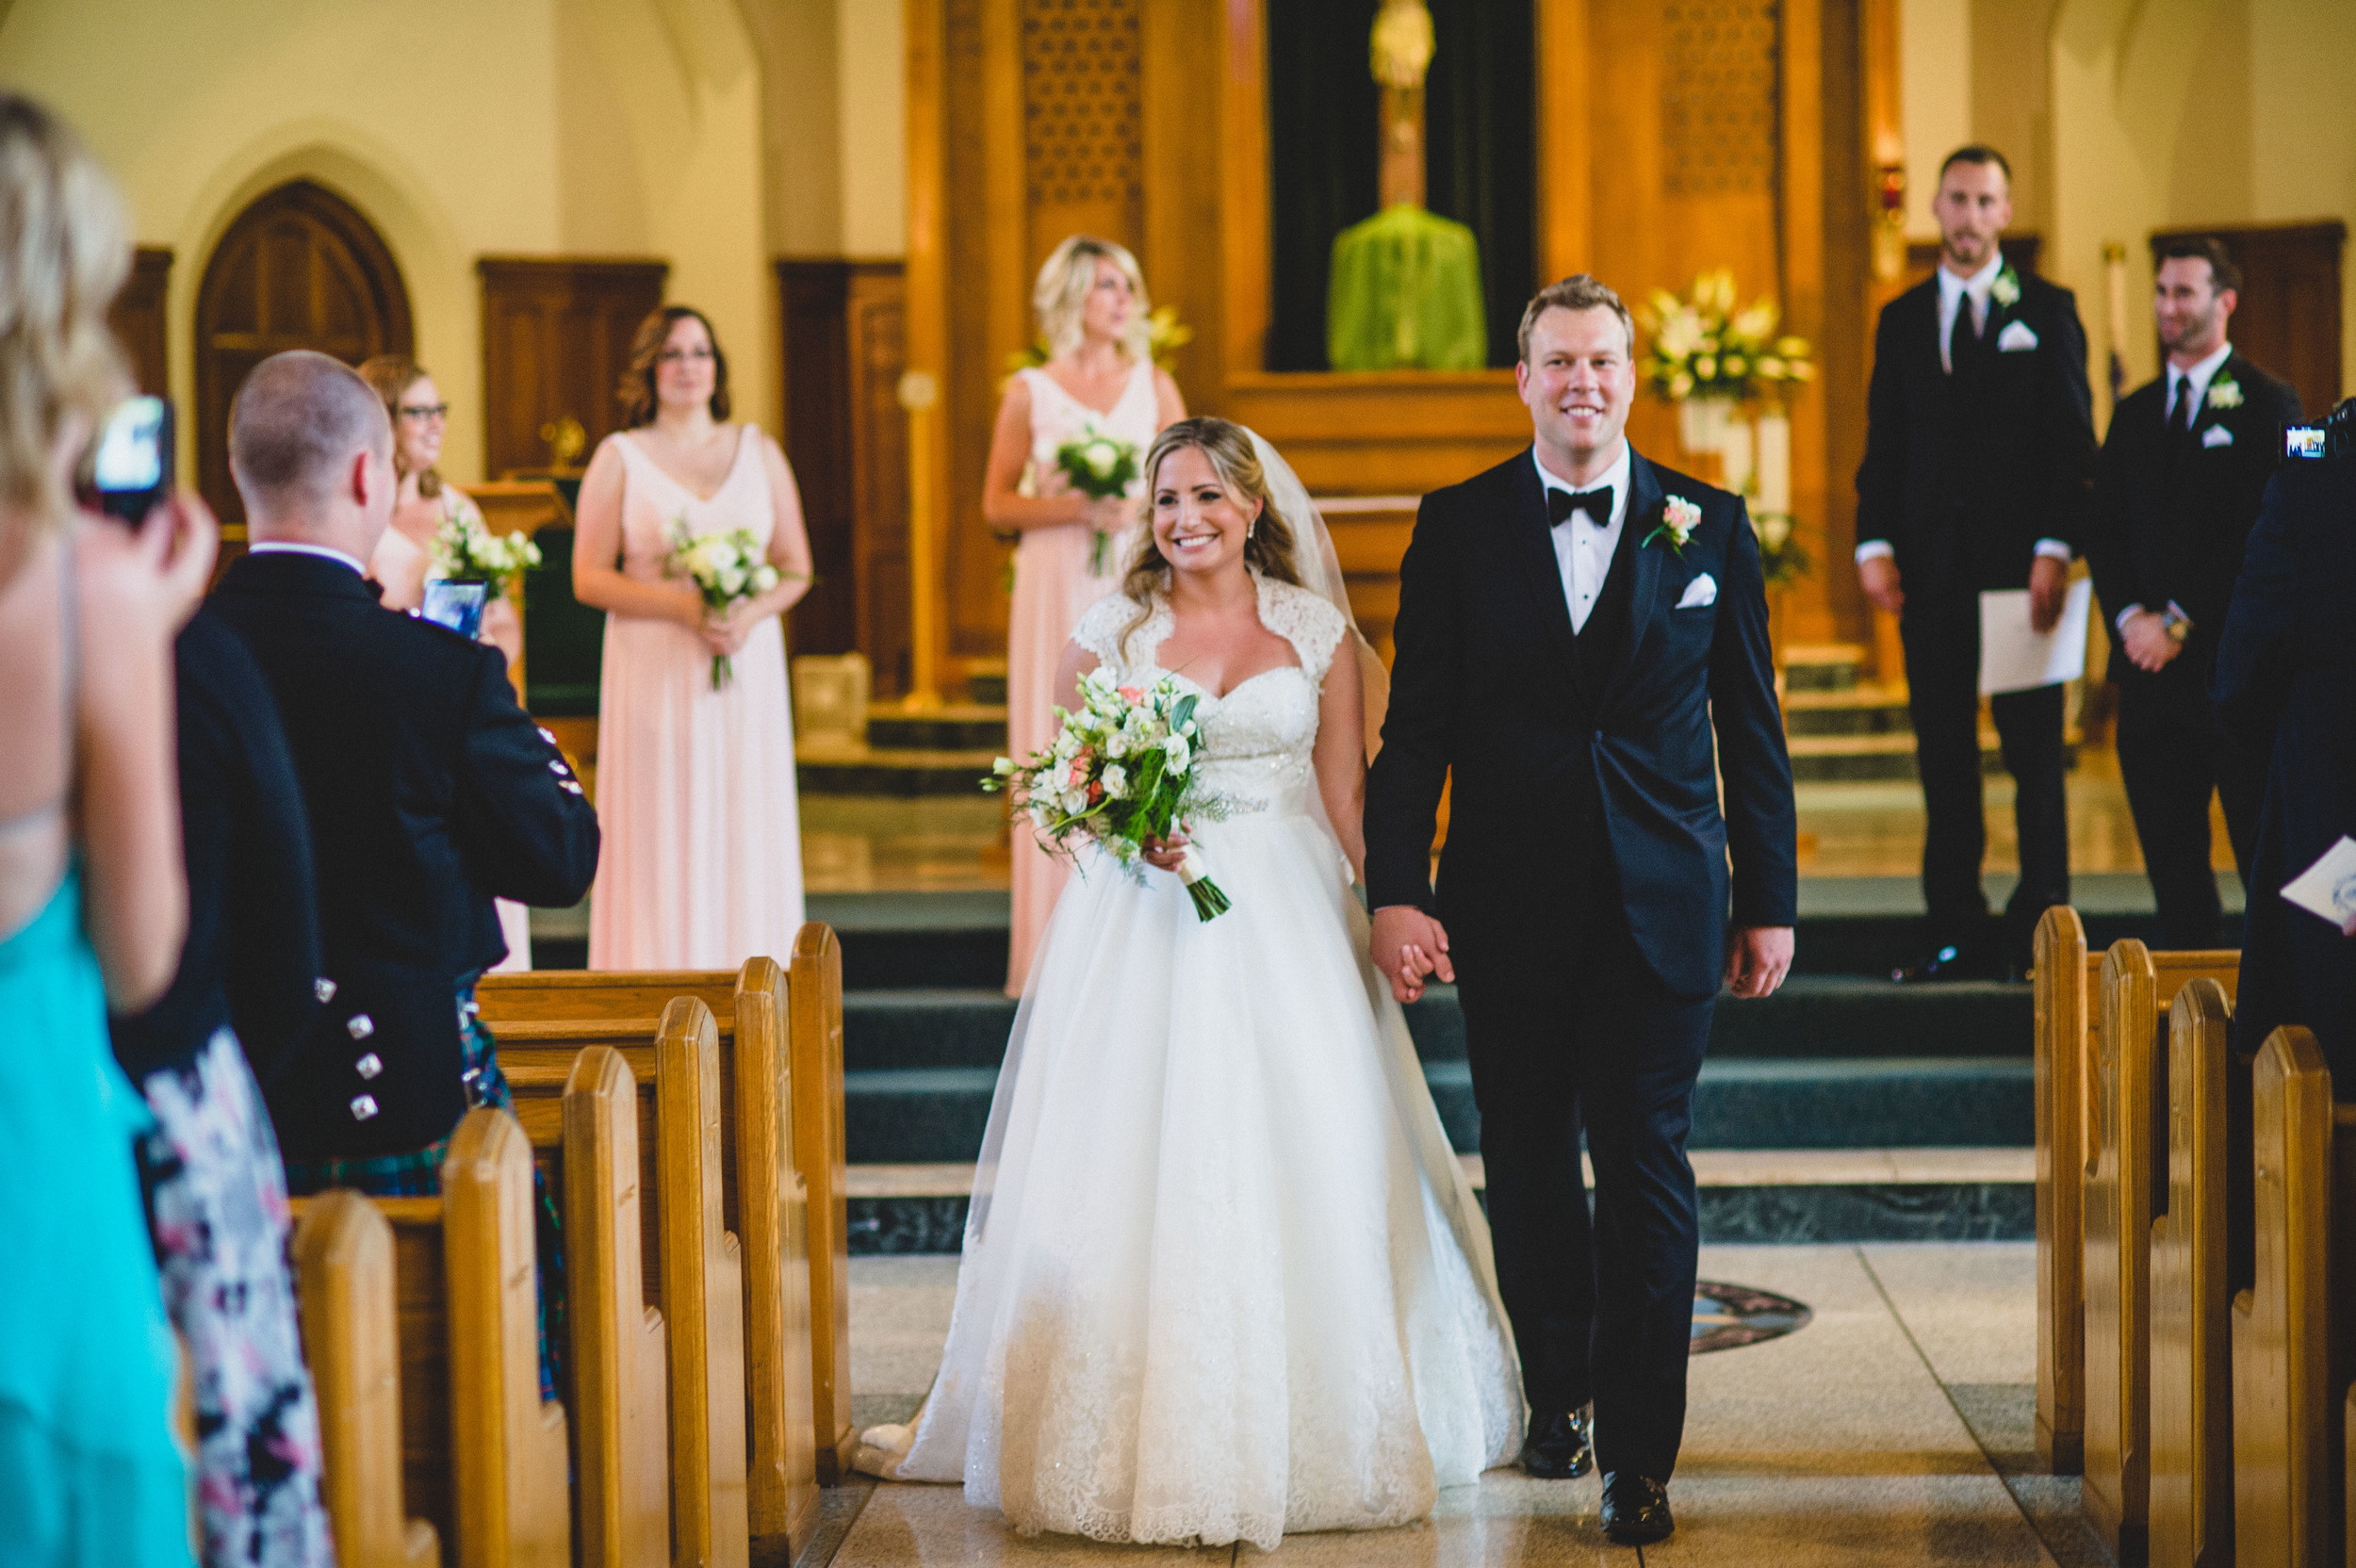 Vancouver St Augustine 's Church wedding photographer edward lai photography-52.jpg